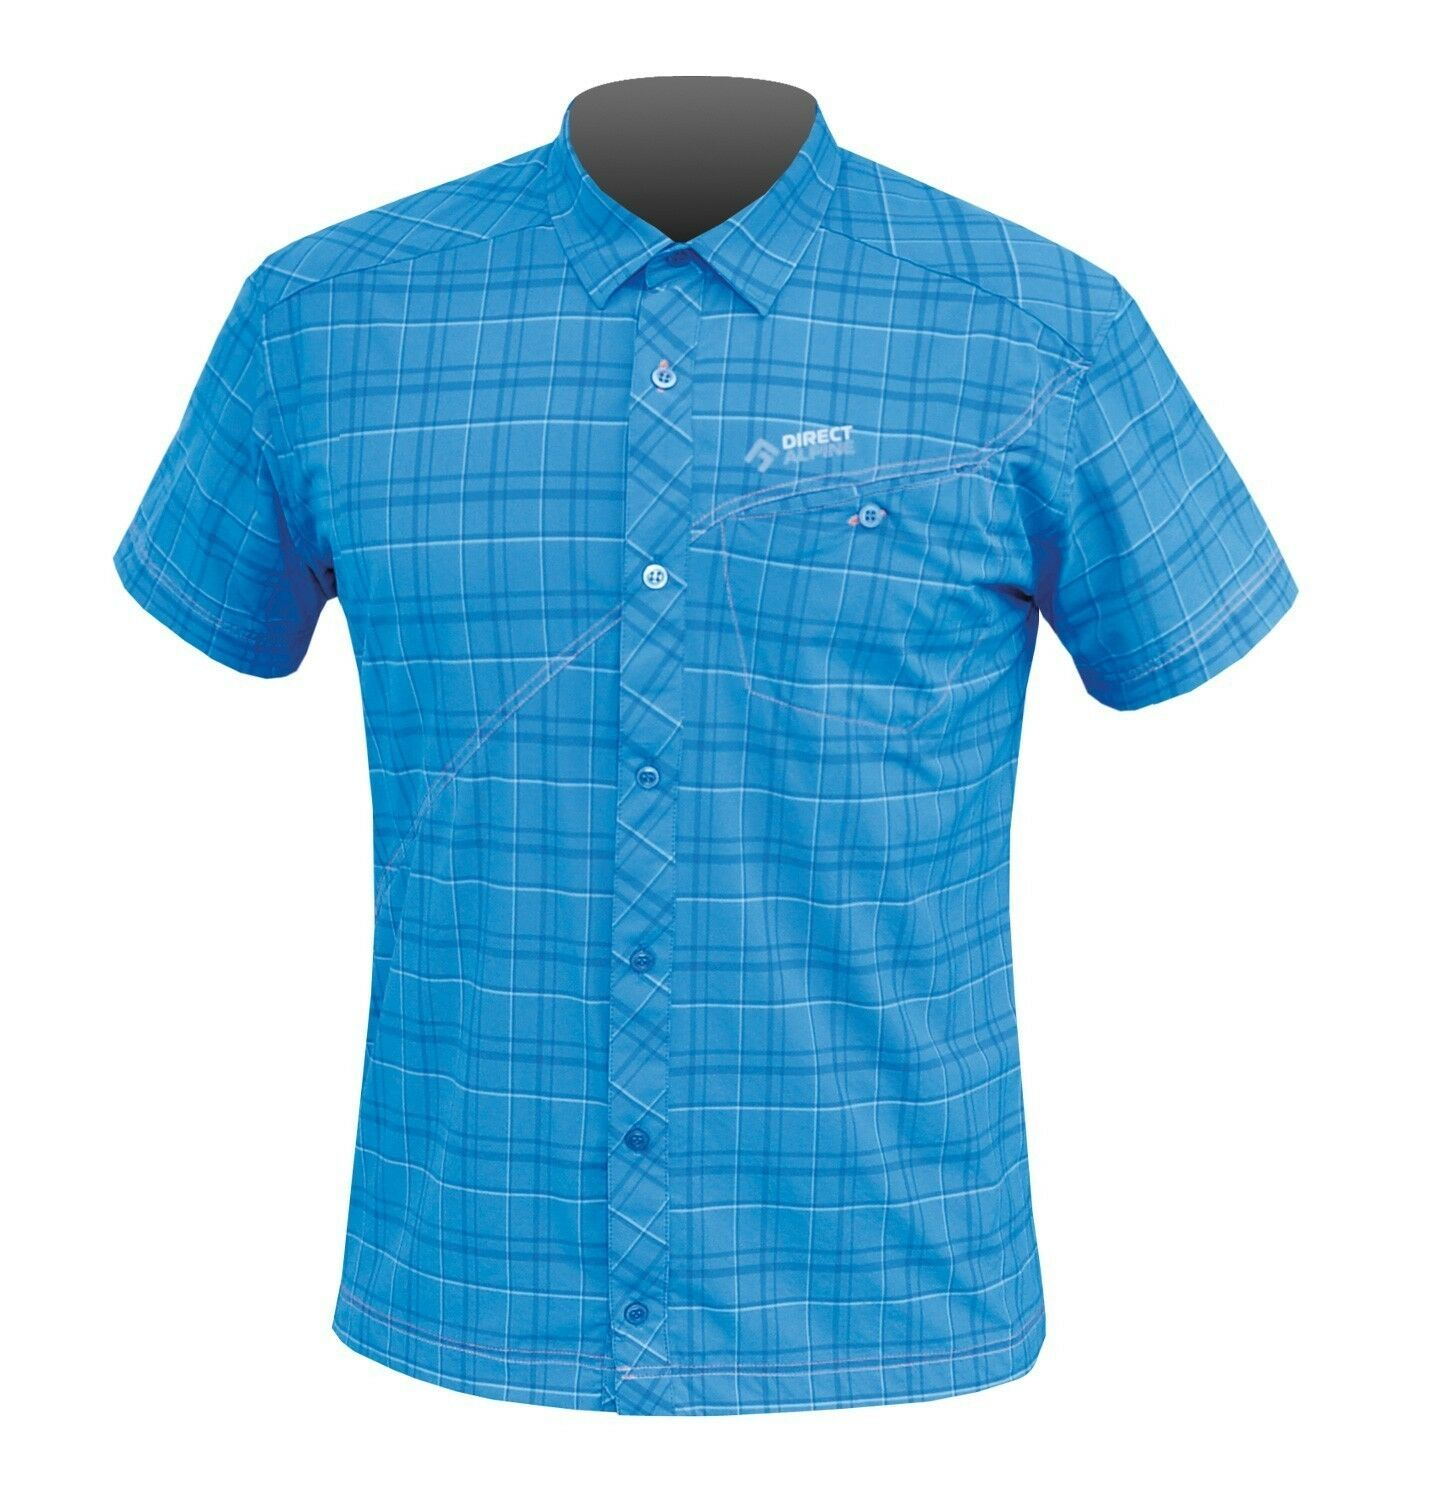 Direct Alpine   Shirt Men, Super Lightweight  Hiking Travel Shirt for Men, S  limited edition